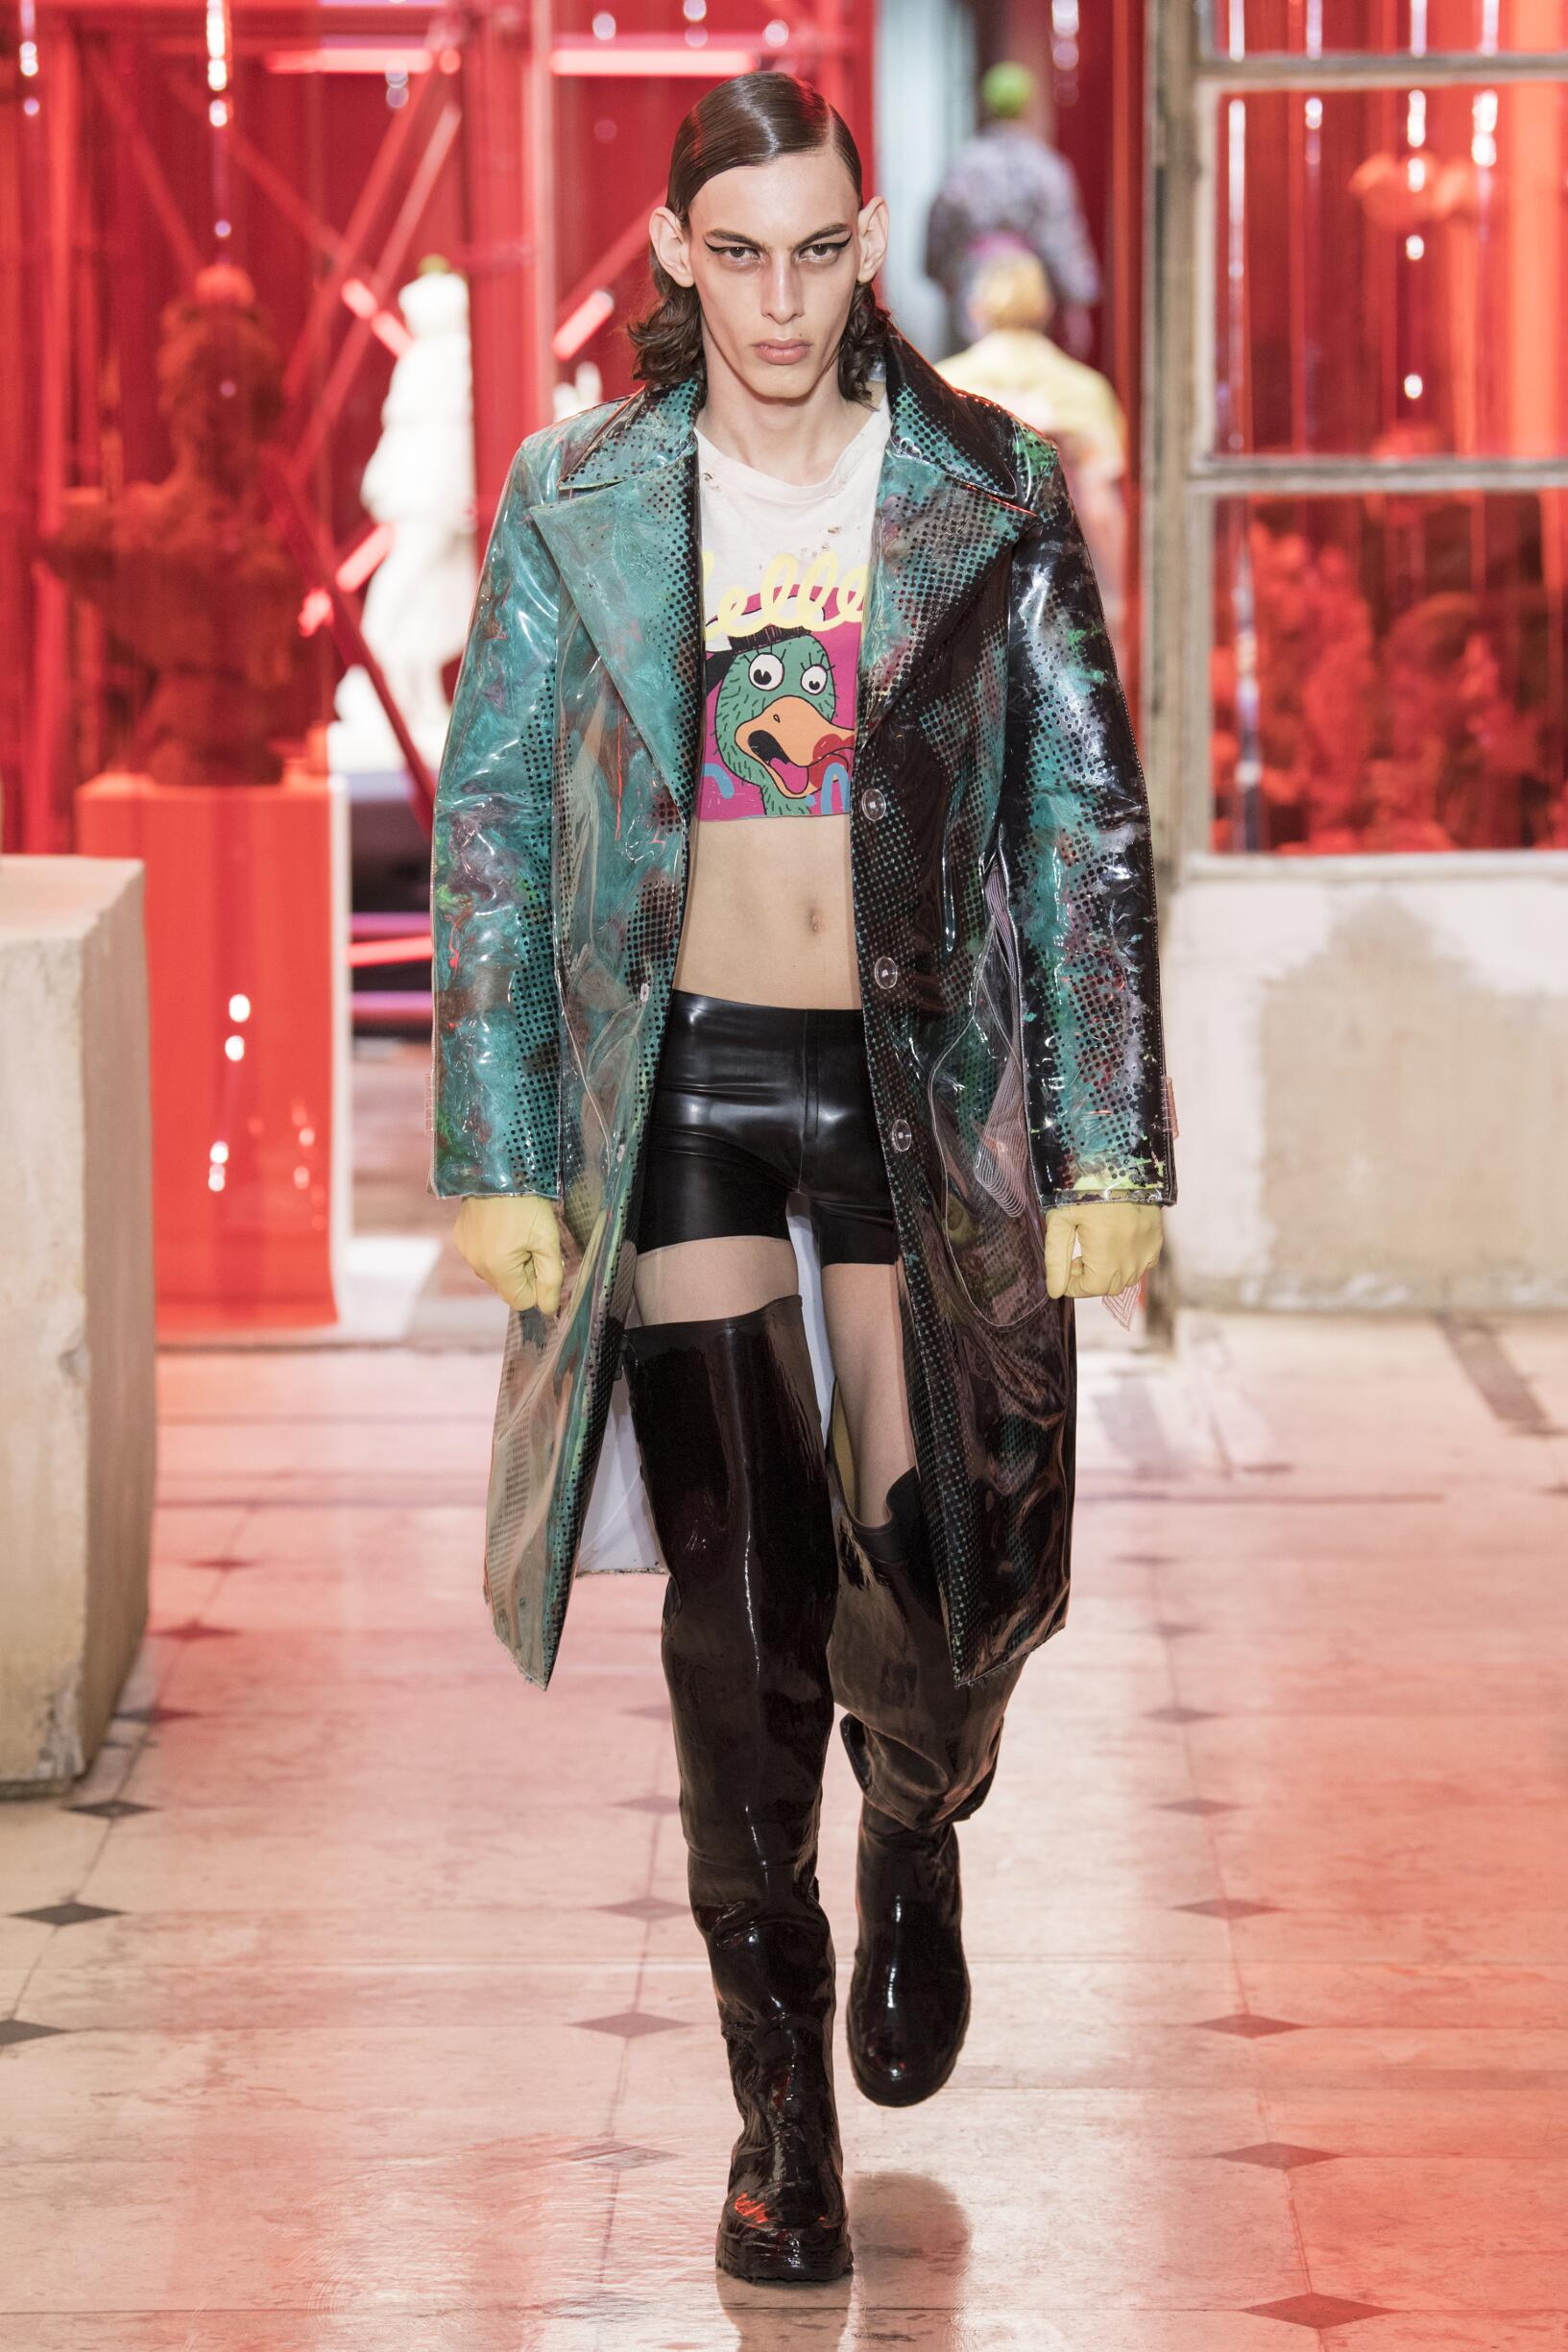 What Is Leather Made Of >> MAISON MARGIELA SPRING SUMMER 2019 MEN'S COLLECTION | The ...